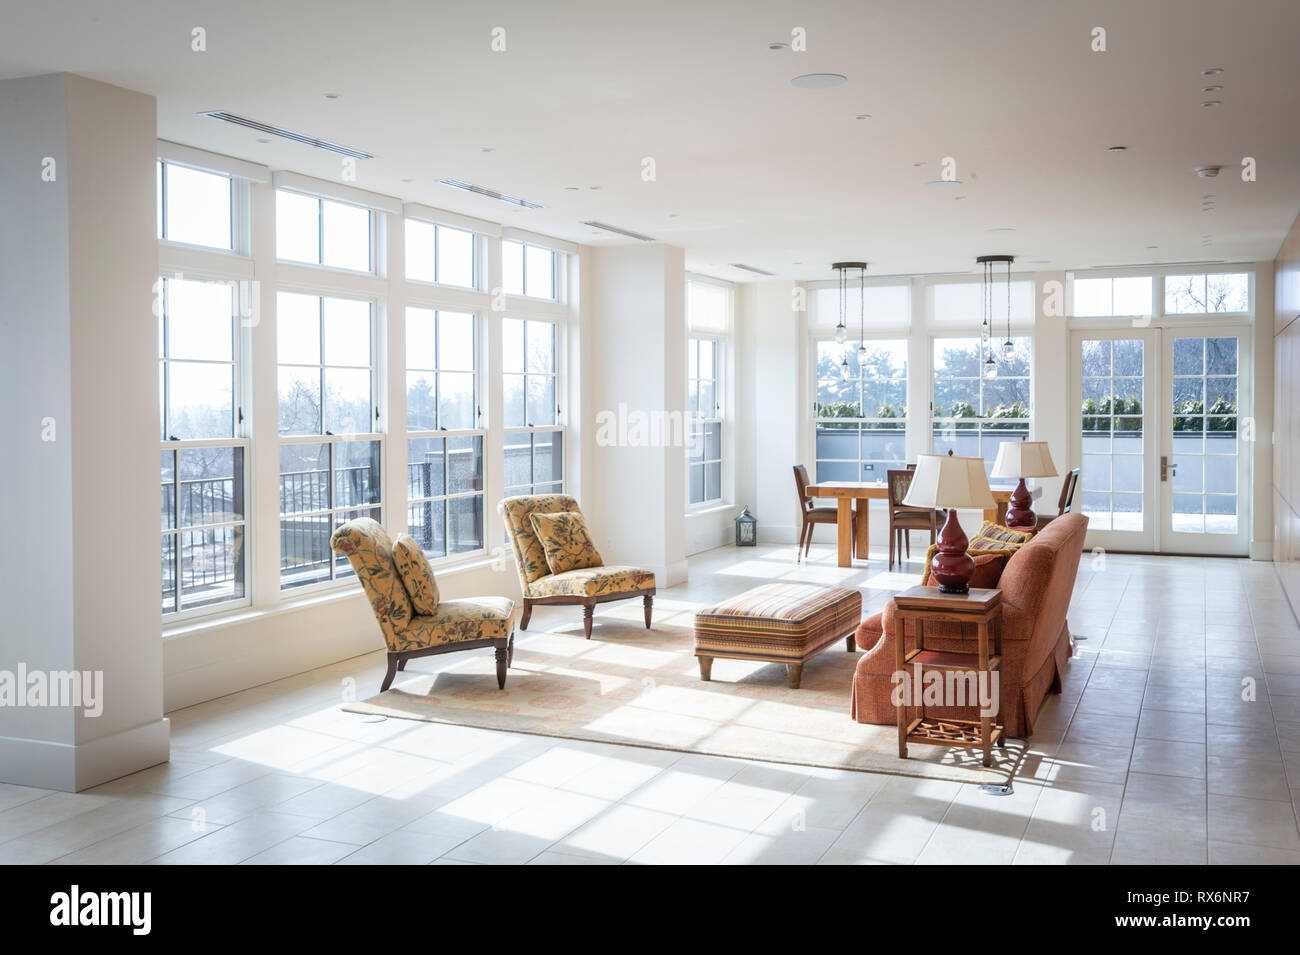 Residential Interior Large Living Room With Floor To Ceiling Windows Stock Photo